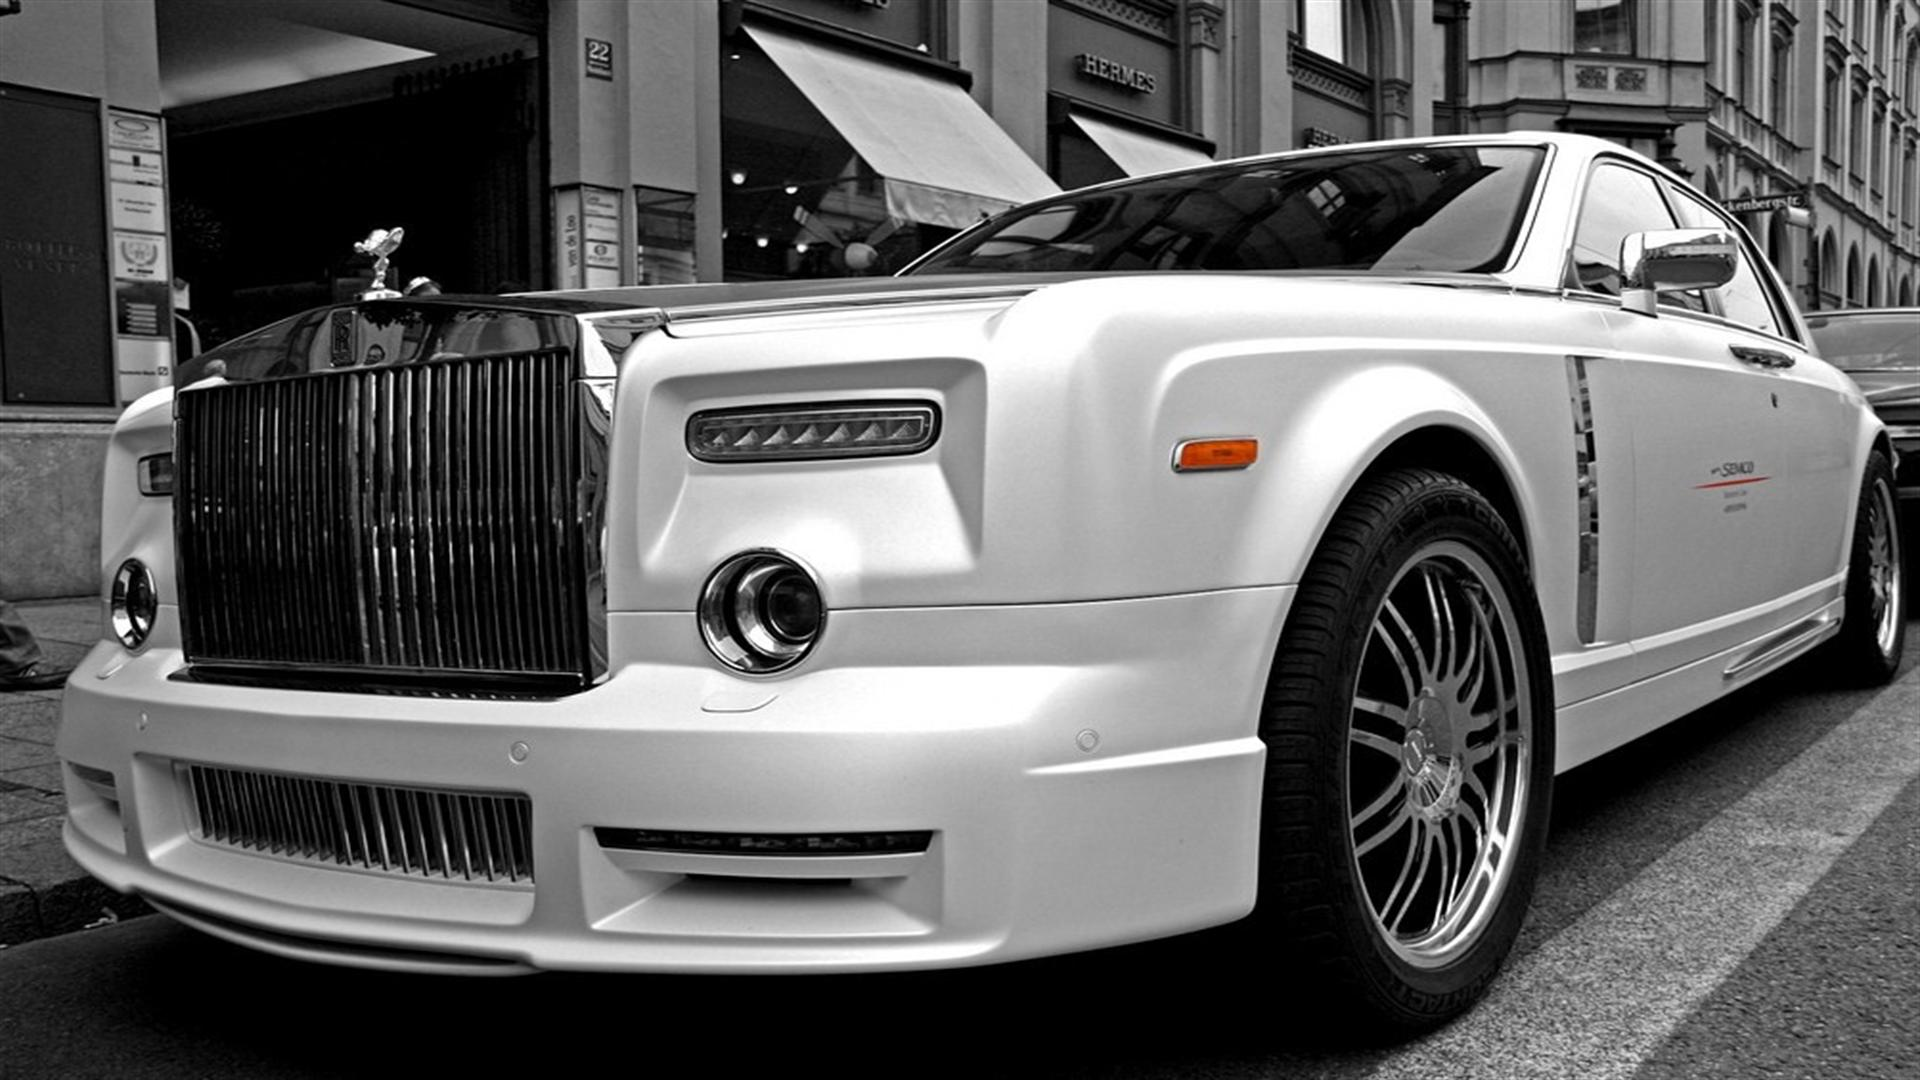 Rolls Royce Hd Wallpapers Wallpaper Cave